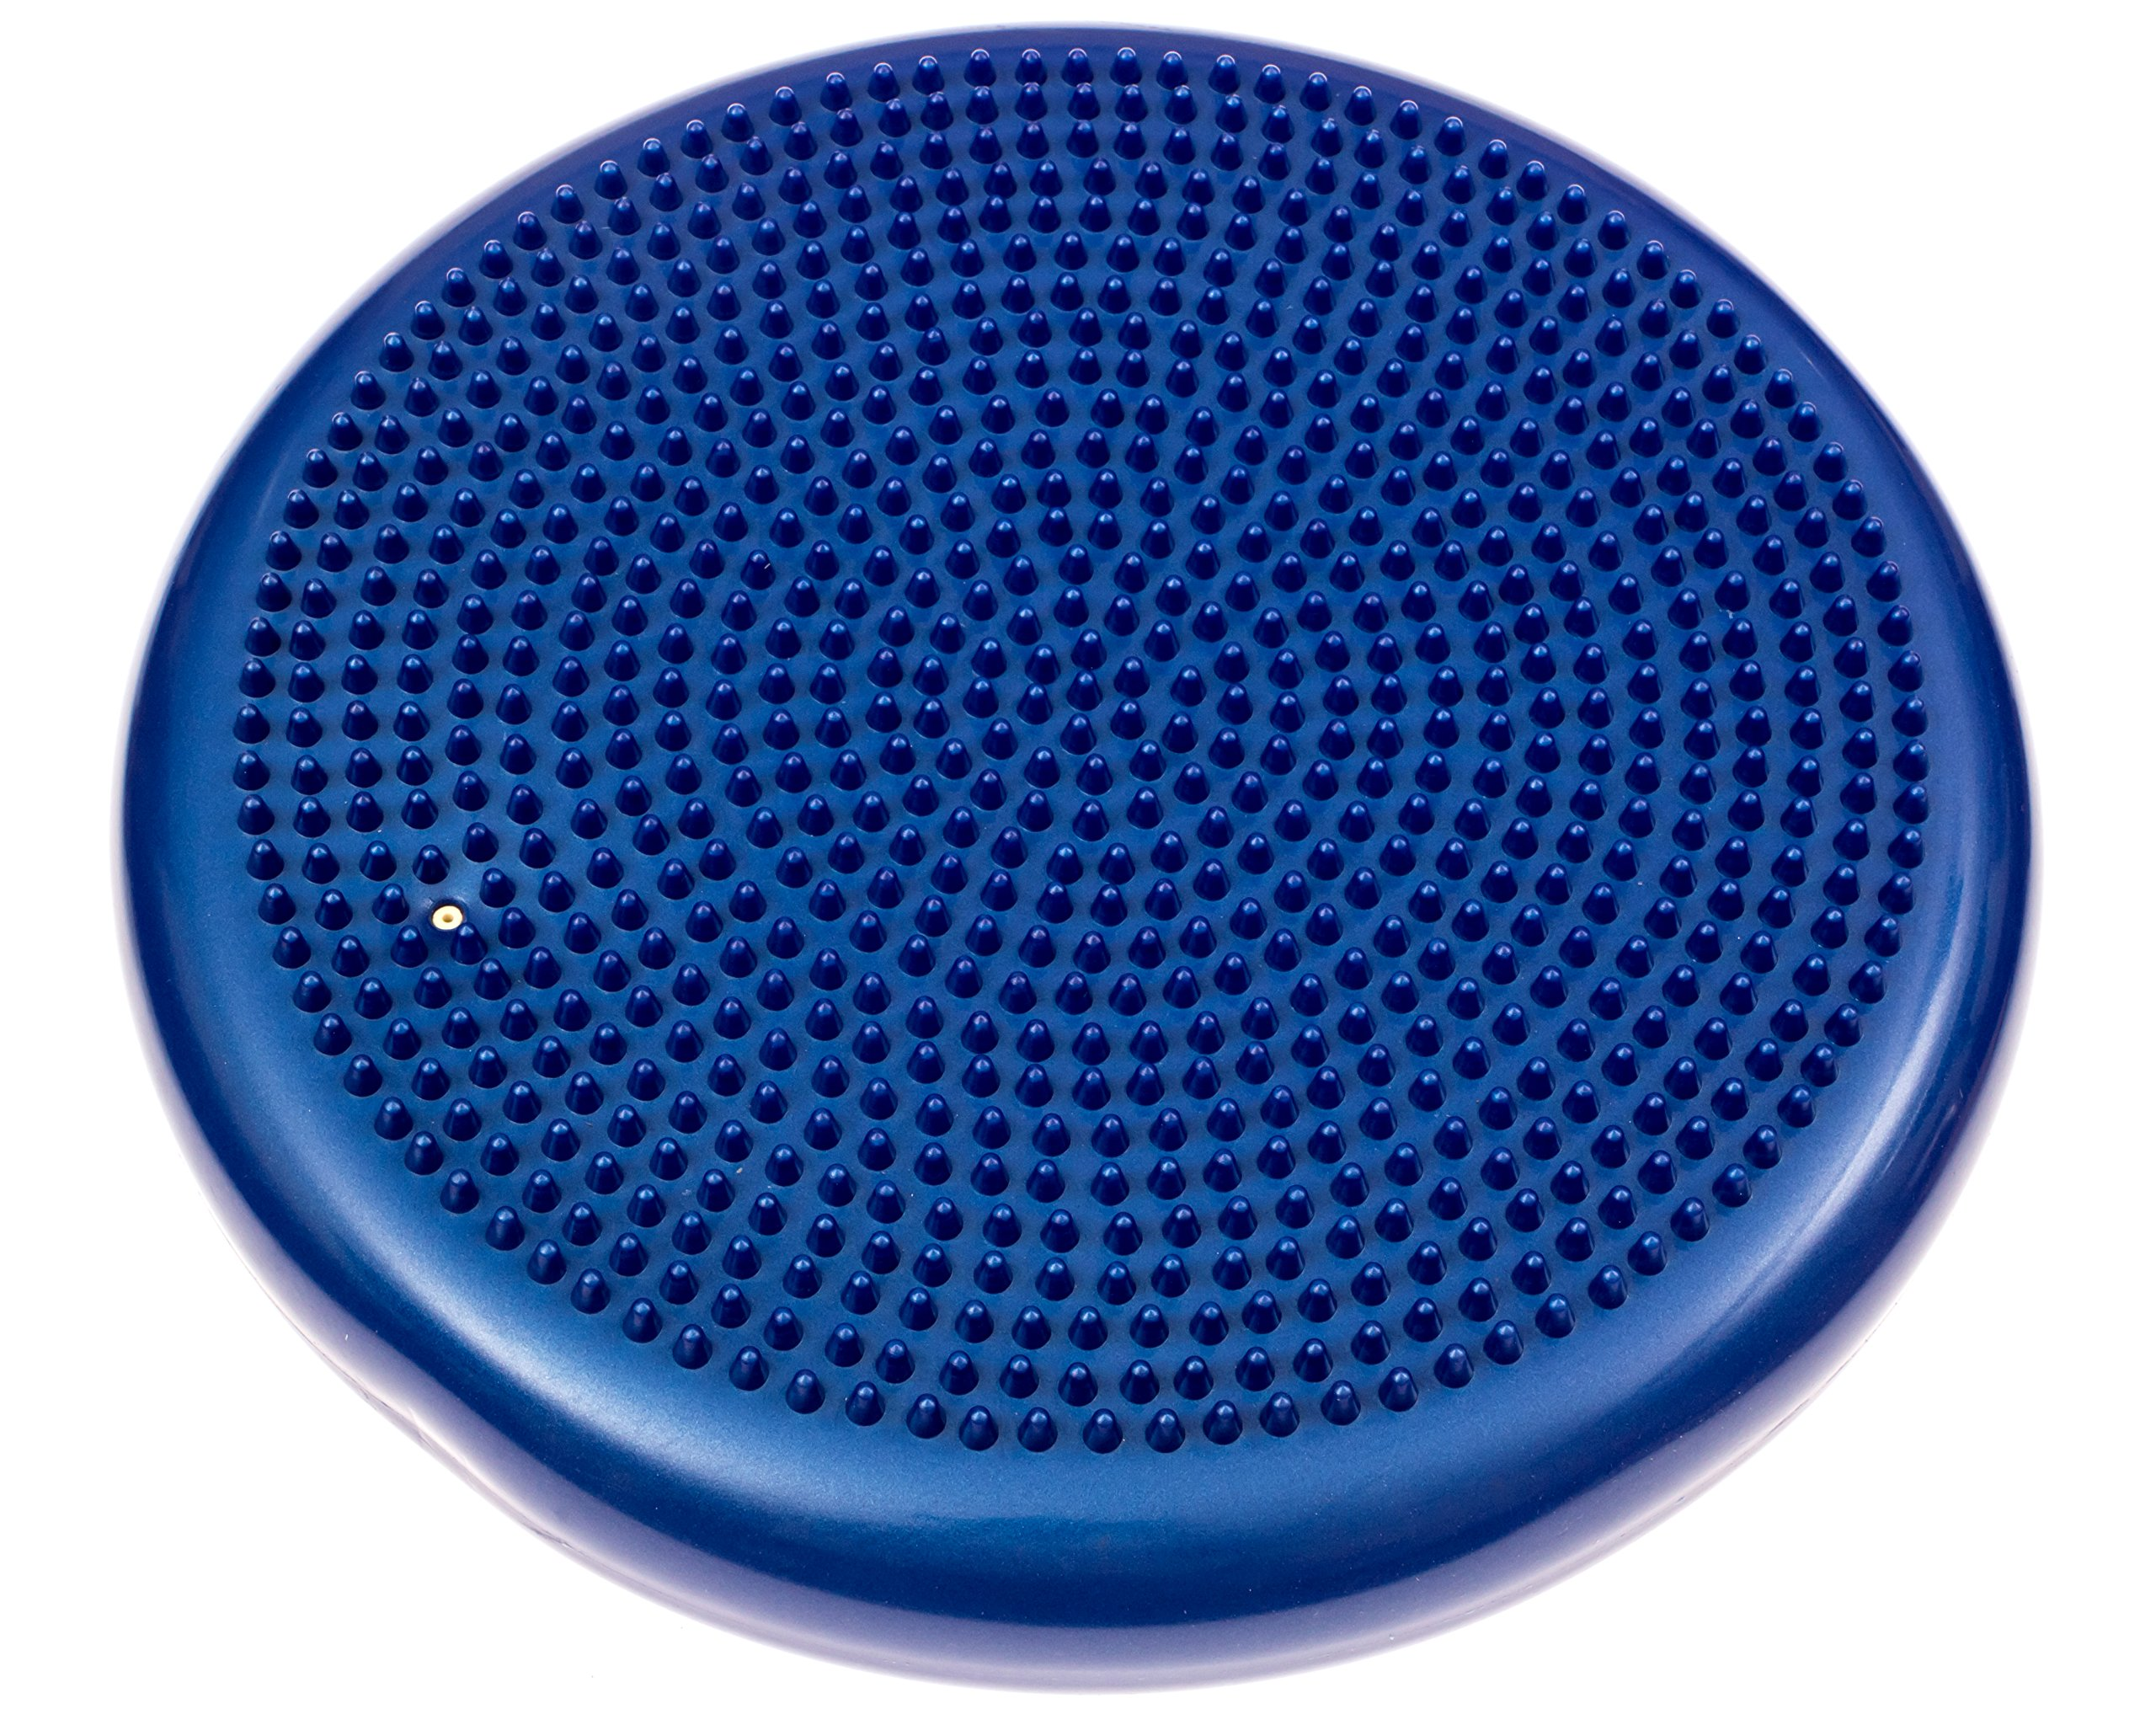 Inflated Stability Wobble Cushion, Including Free Pump / Exercise Fitness Core Balance Disc,Blue,size: 13 inches / 33 cm diameter by bintiva (Image #3)